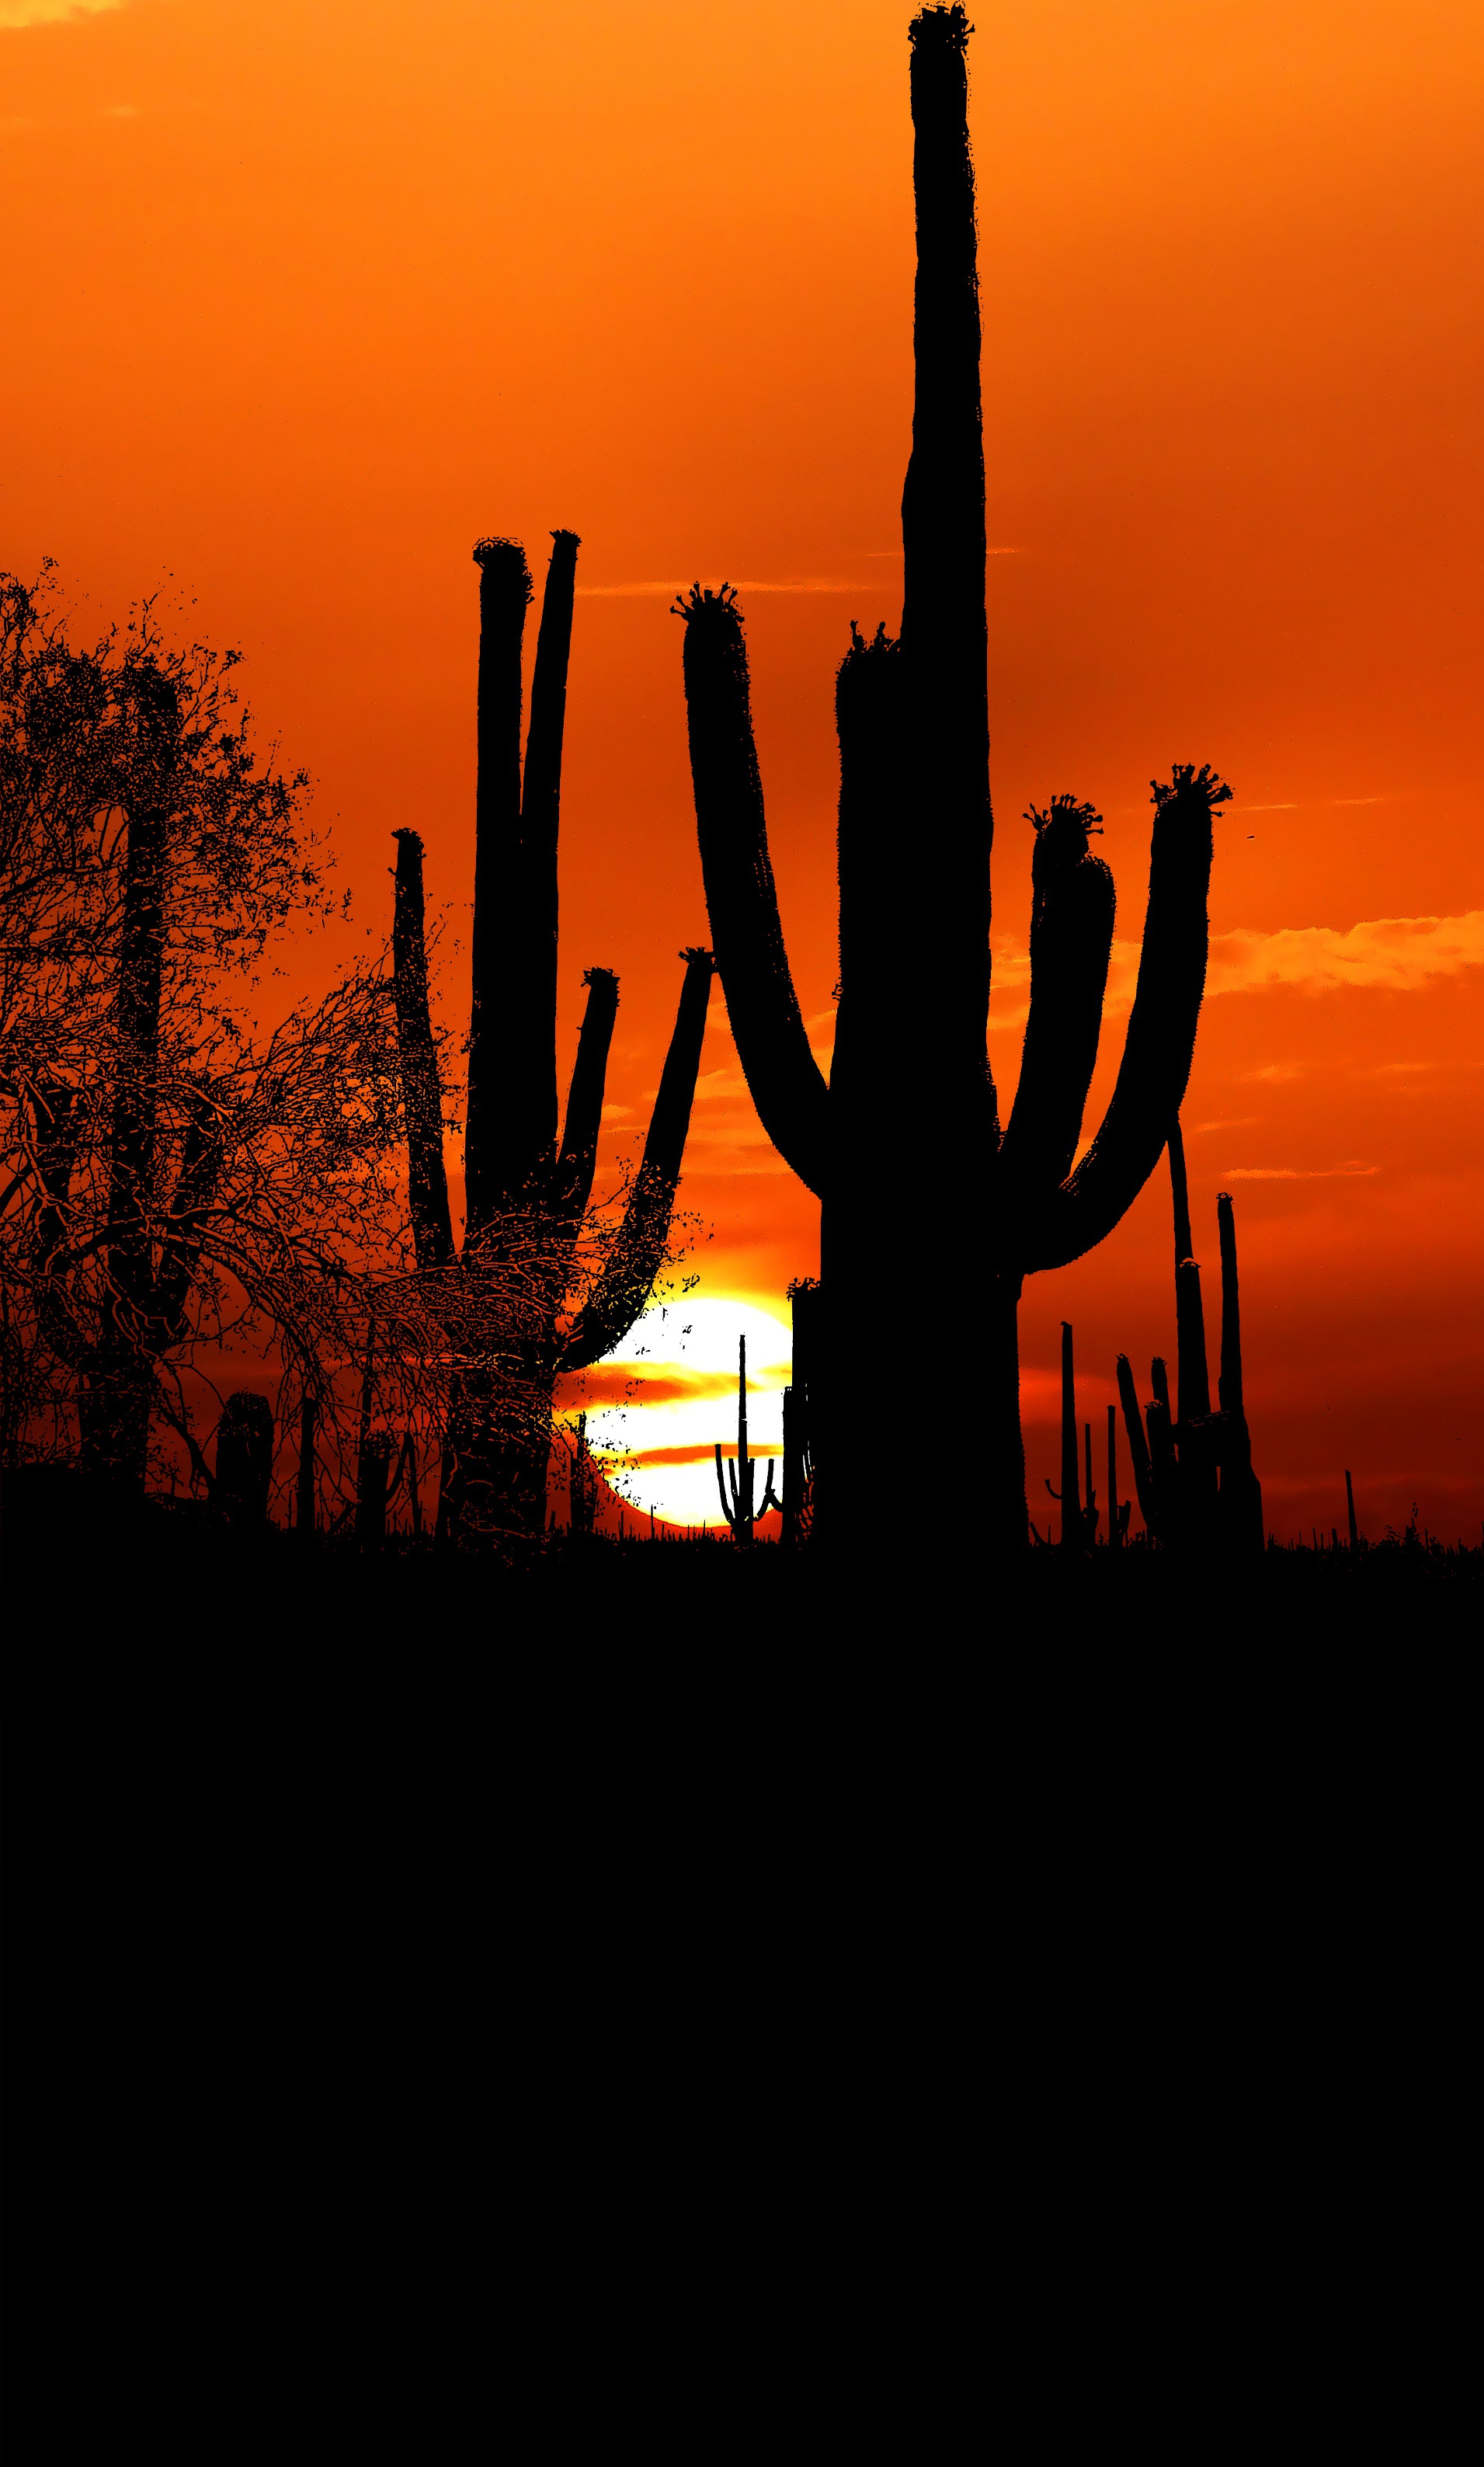 118407 download wallpaper Cactuses, Sunset, Sun, Twilight, Dark, Dusk, Outlines screensavers and pictures for free